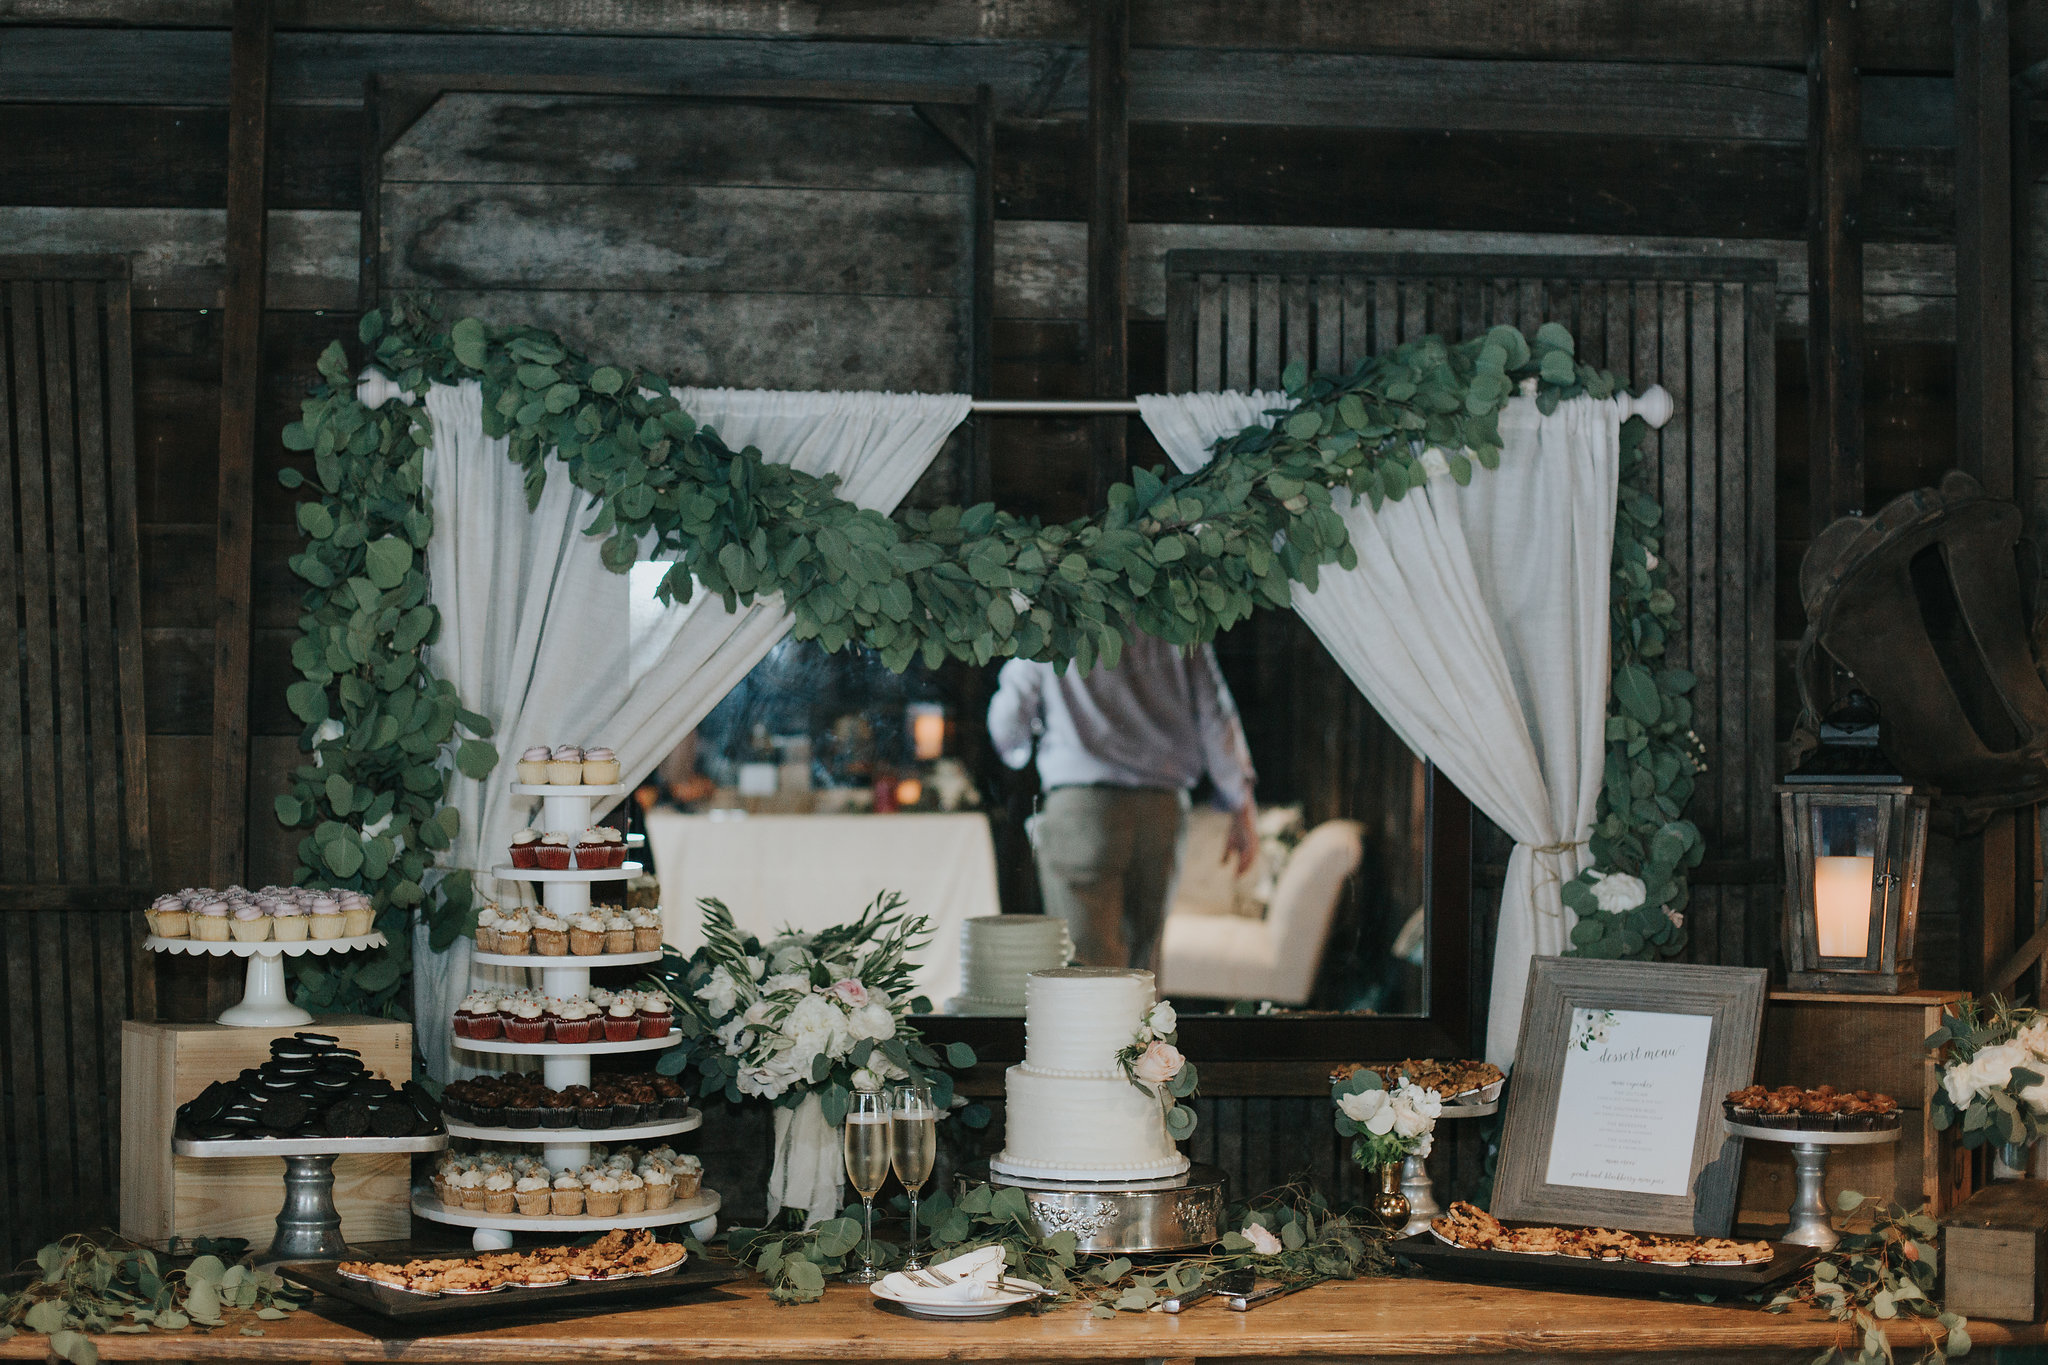 rus-farm-wedding-heald-wedding-consulting-hwc-dessert-table-farm.jpg